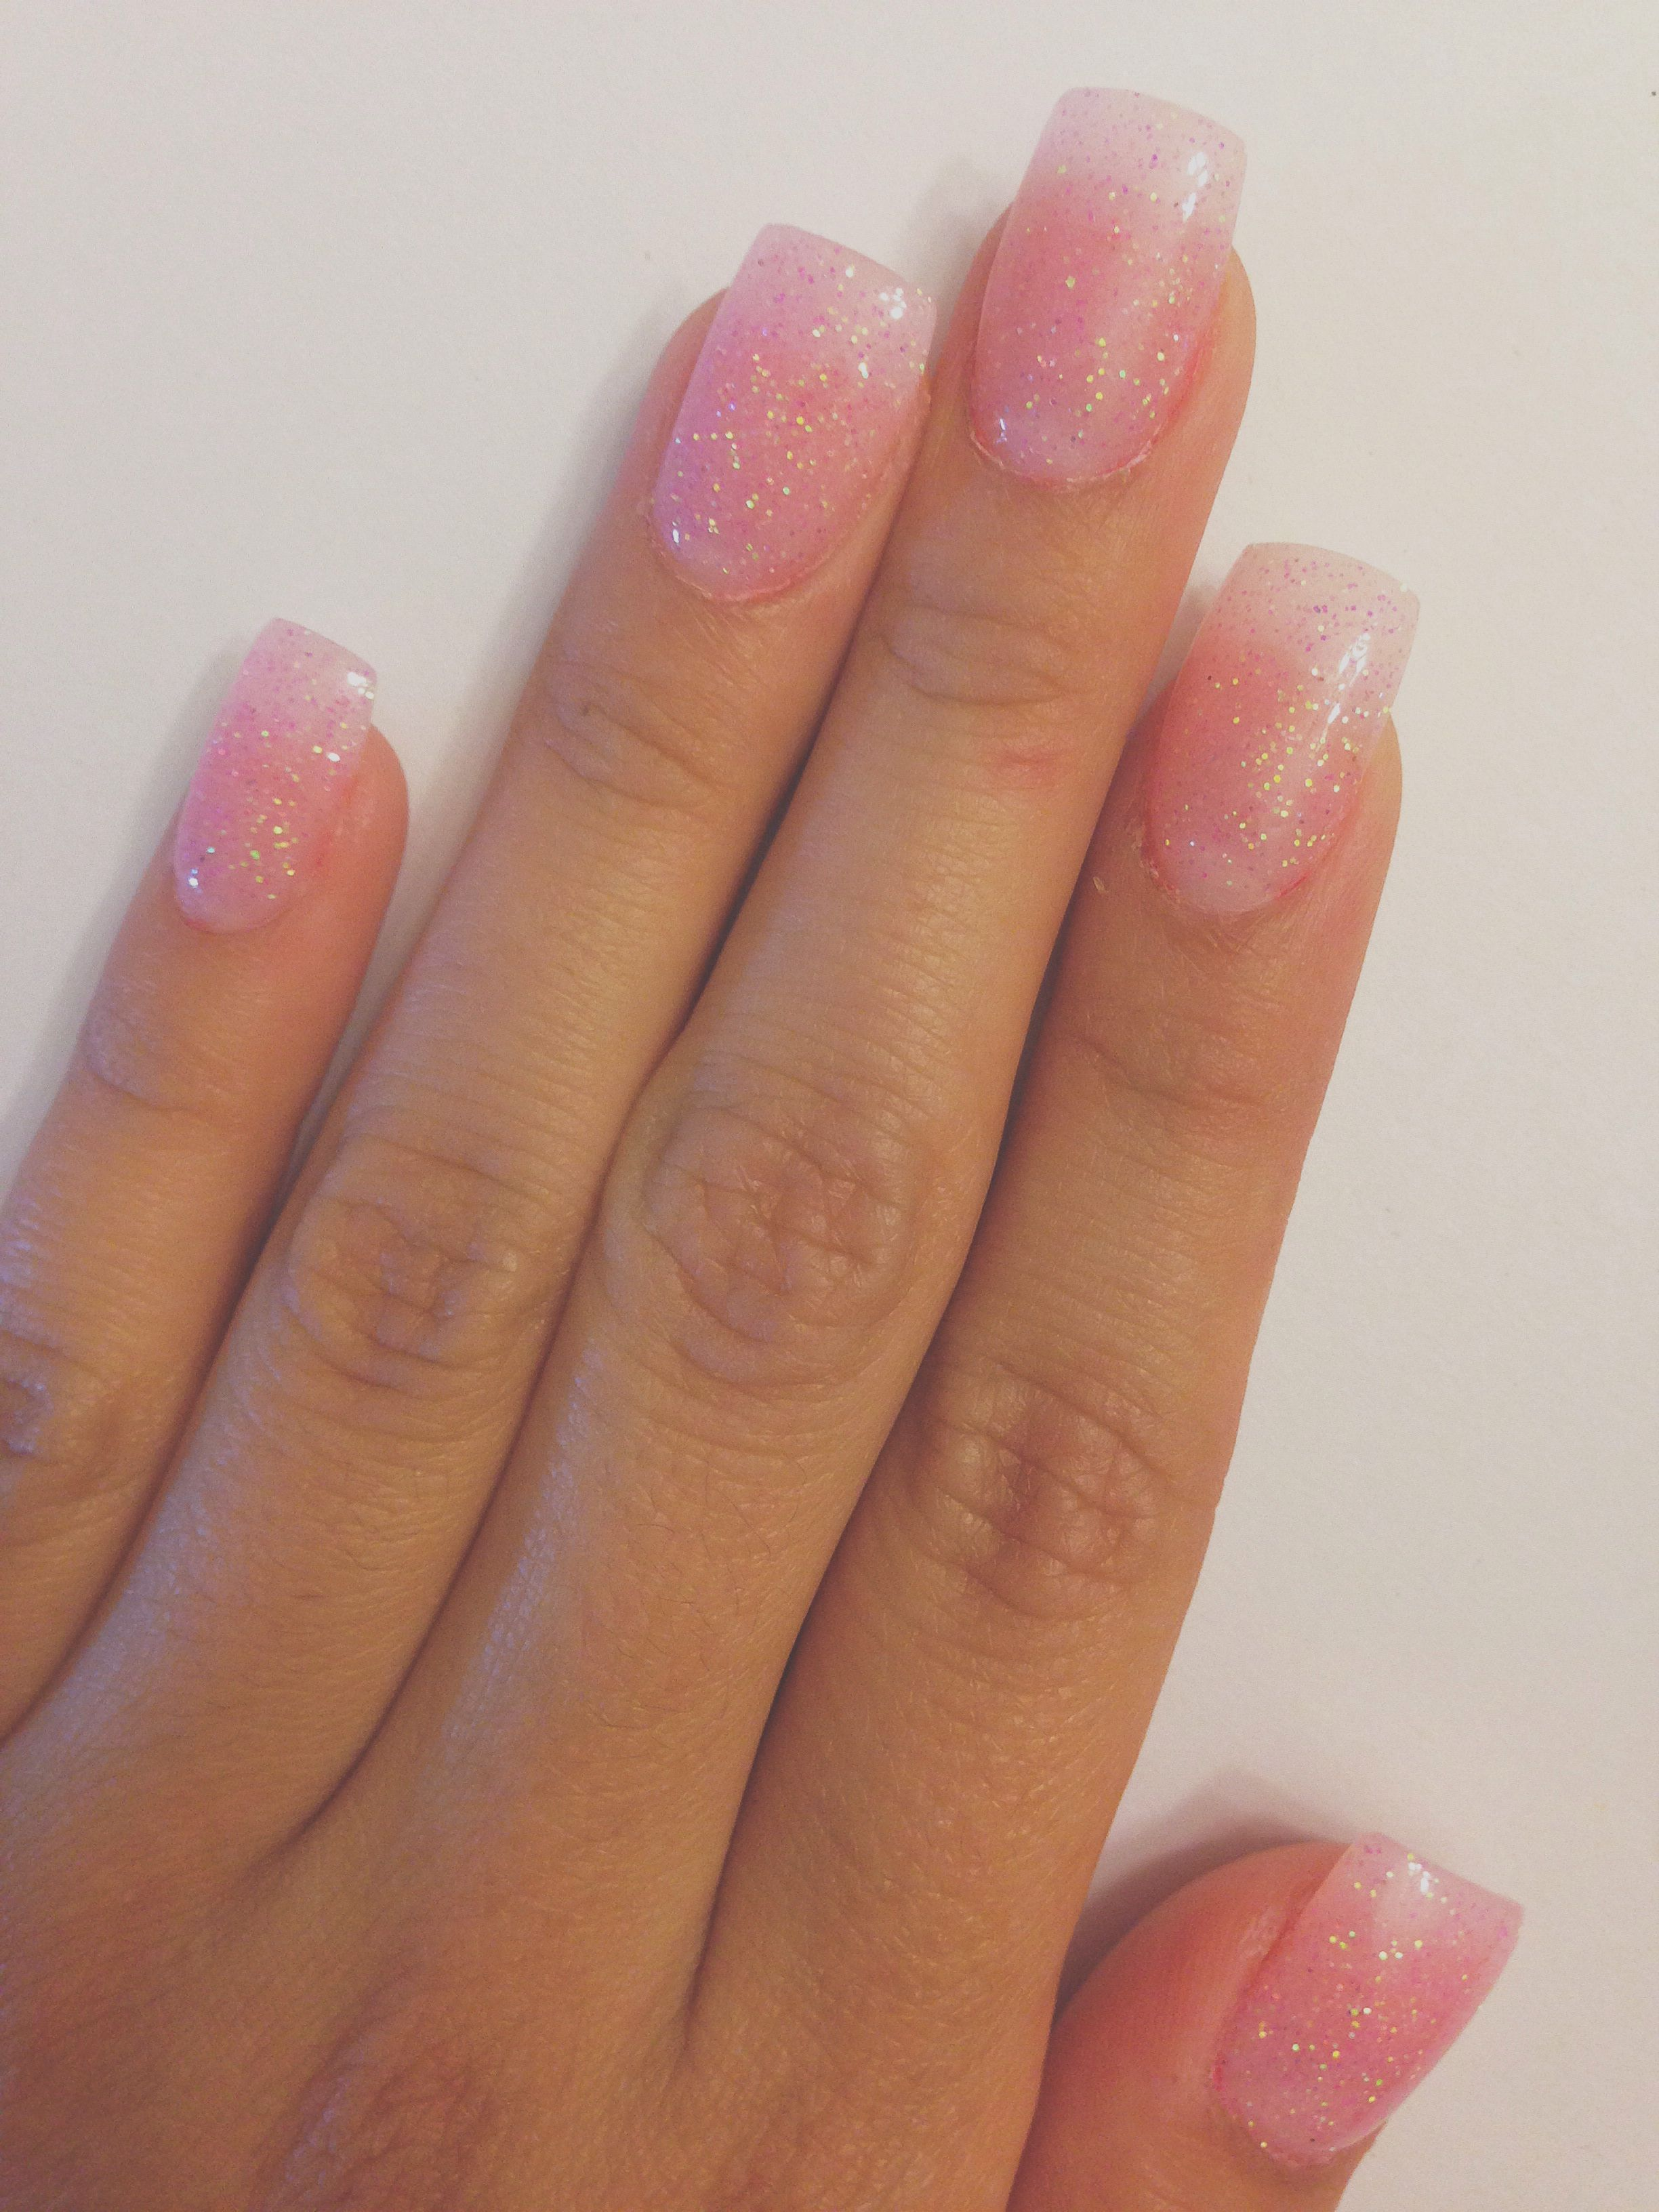 Discover ideas about Manicure Tips